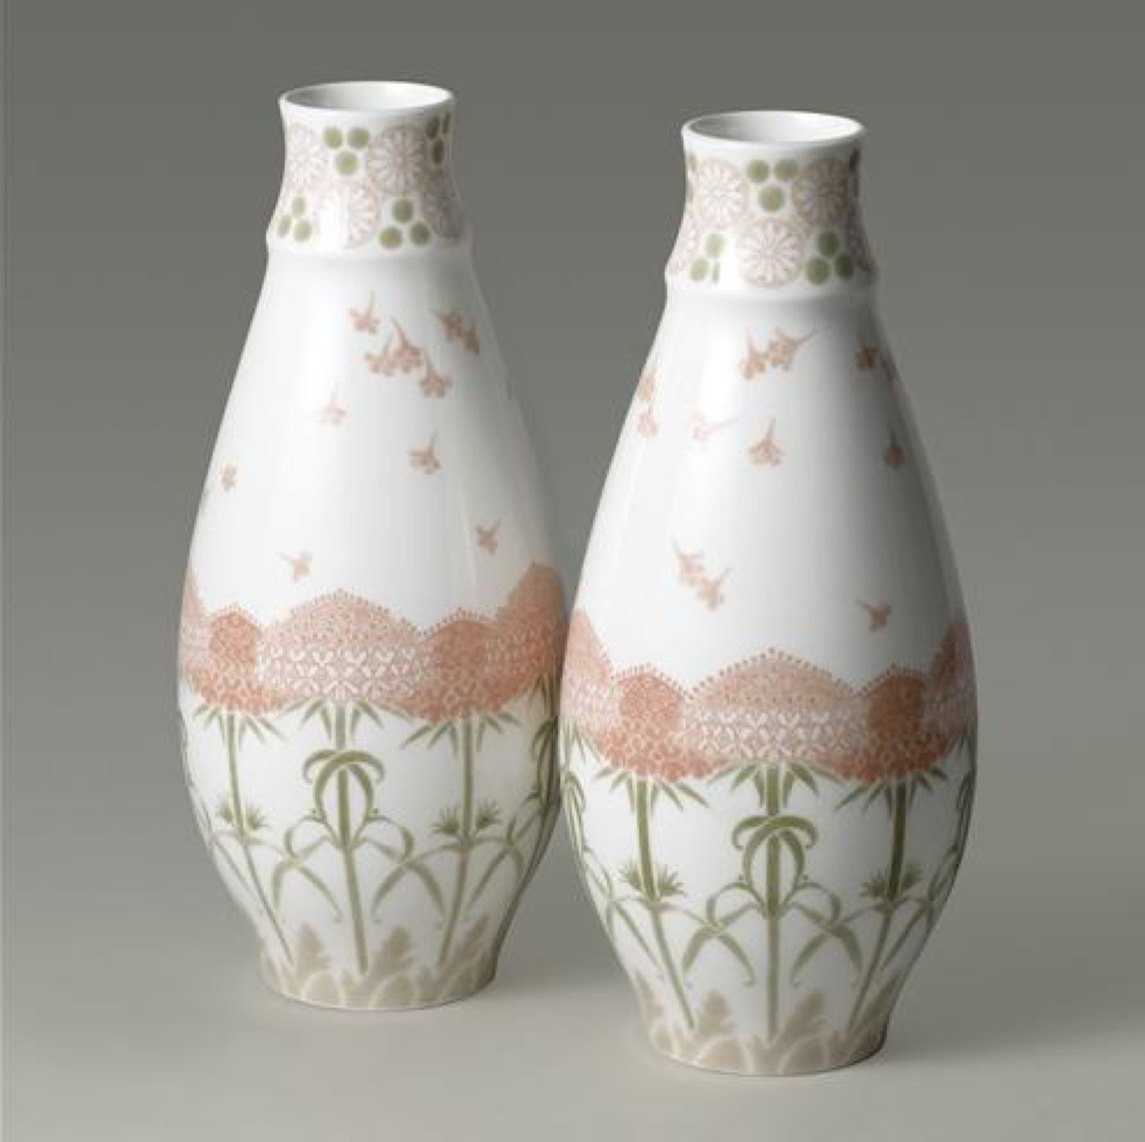 Glasses and ceramics - 1.jpg